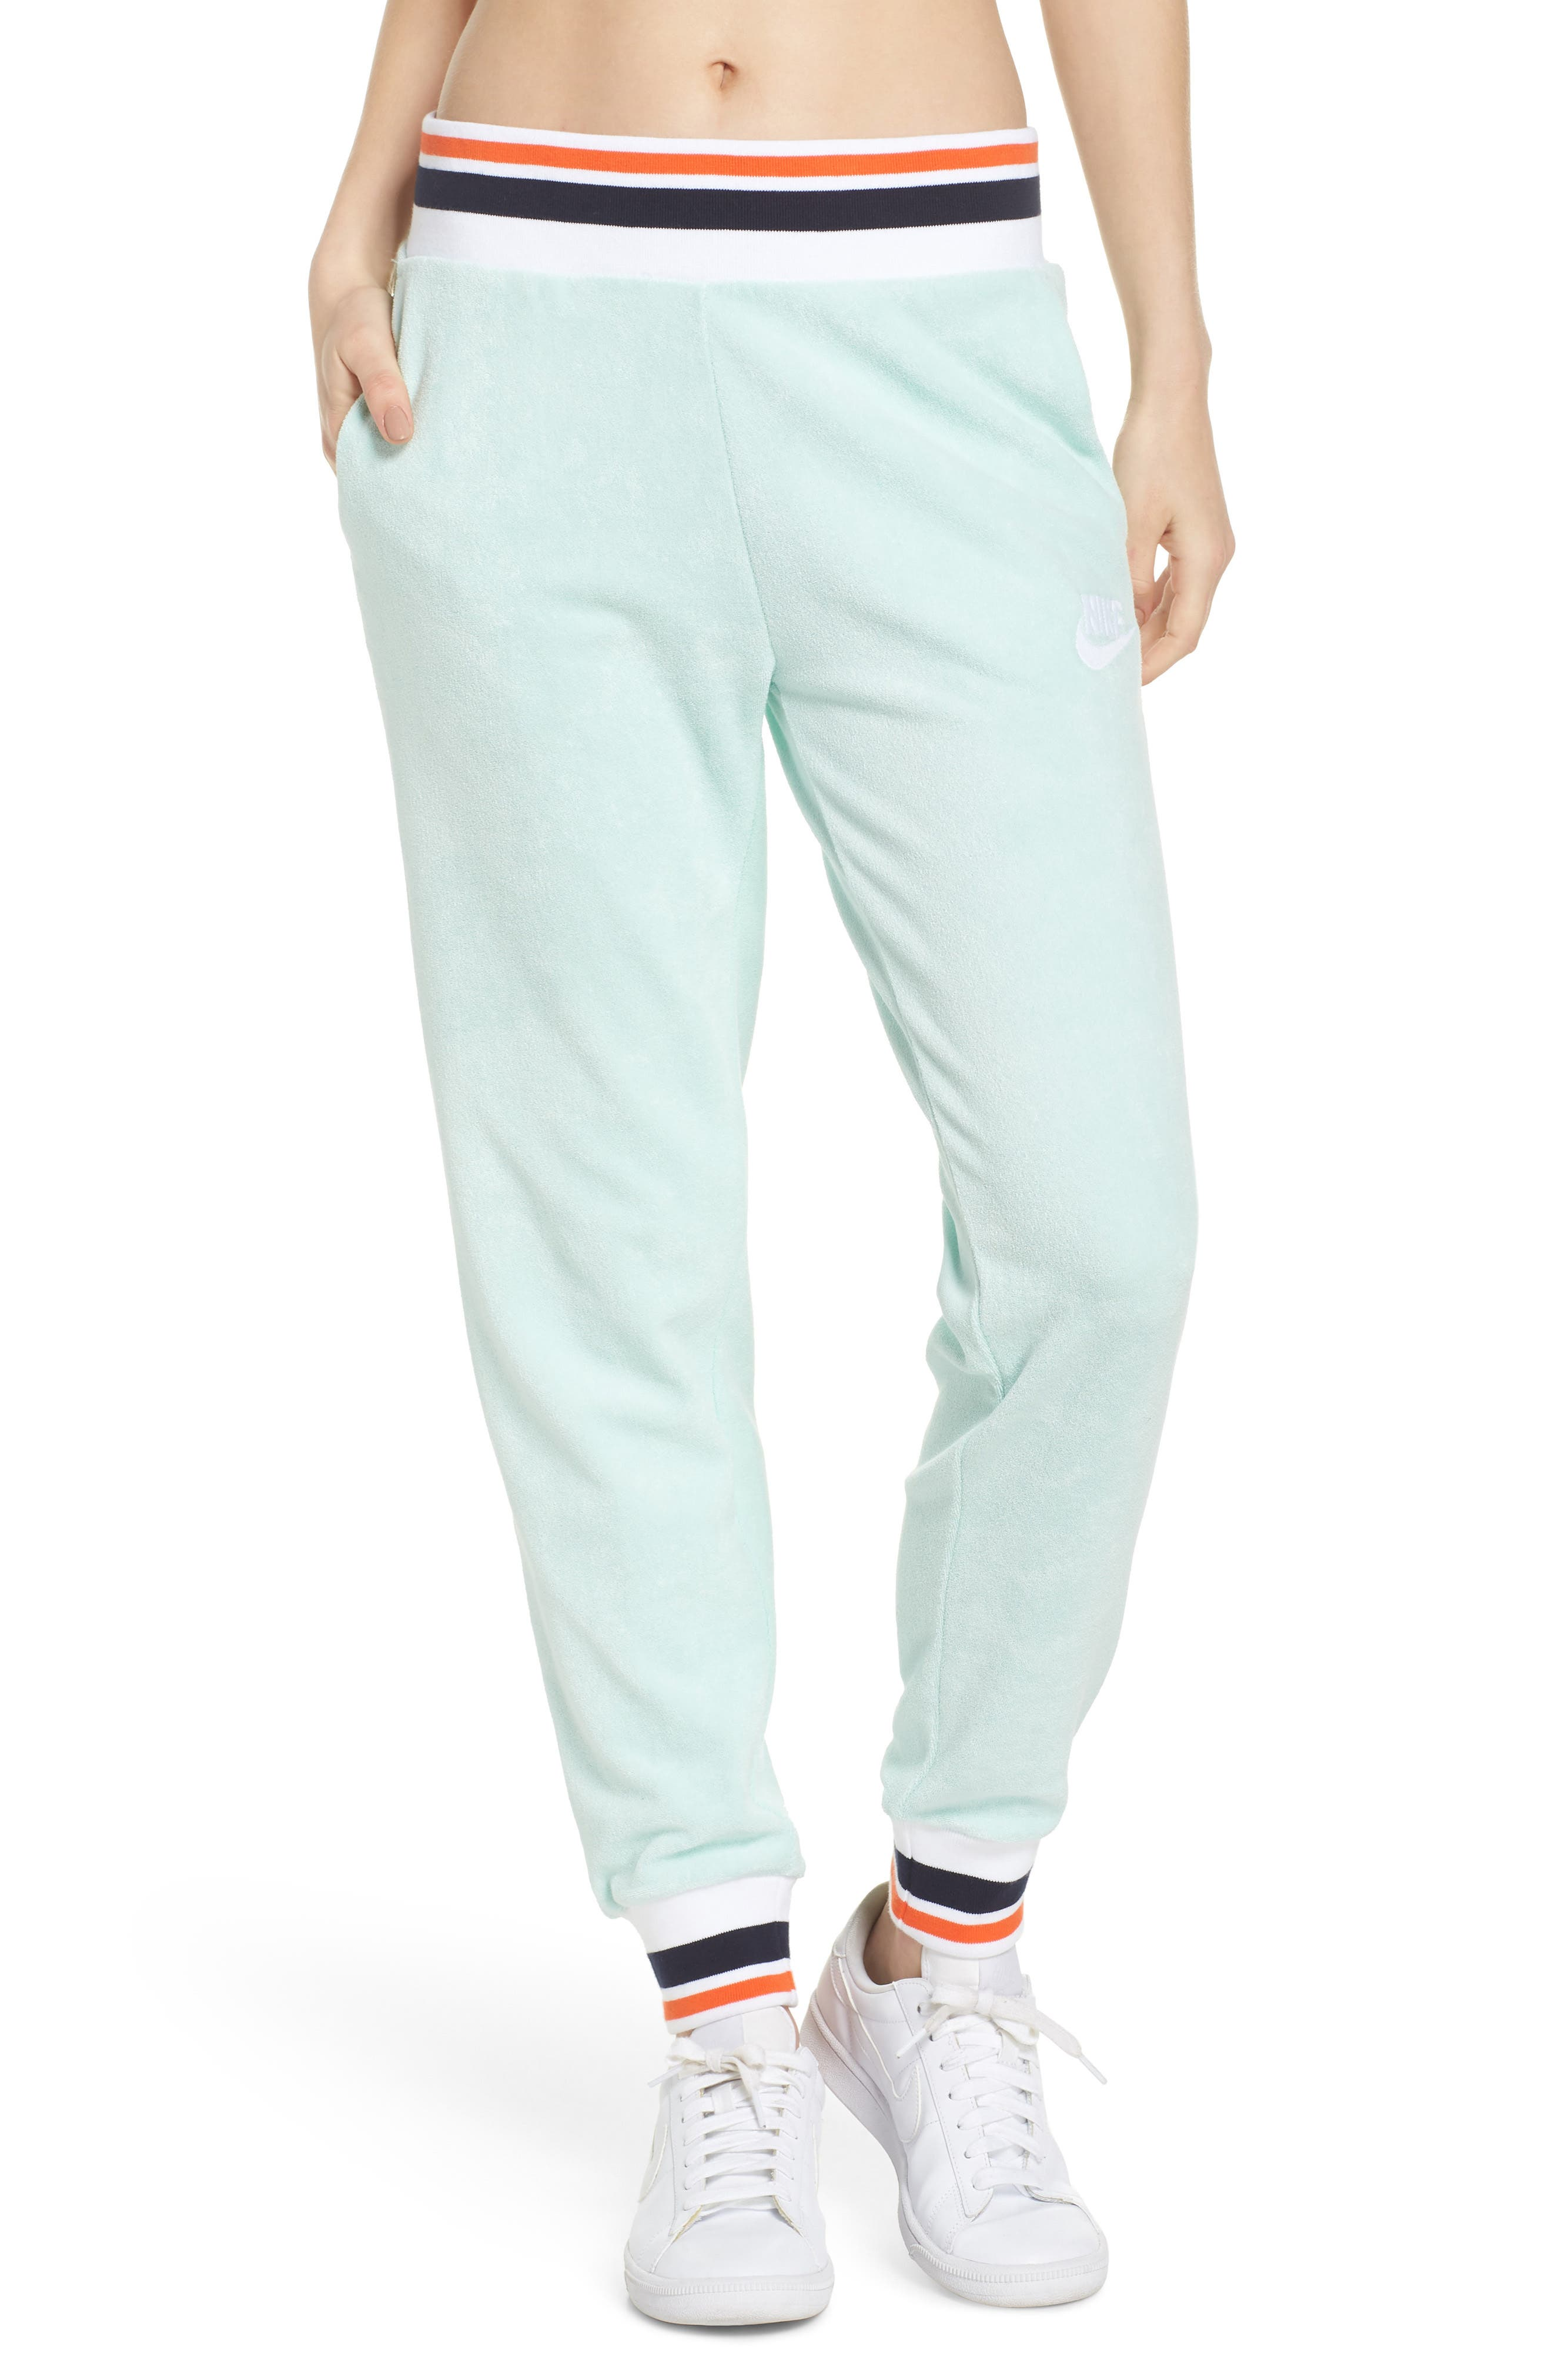 Sportswear French Terry Pants,                             Main thumbnail 1, color,                             401